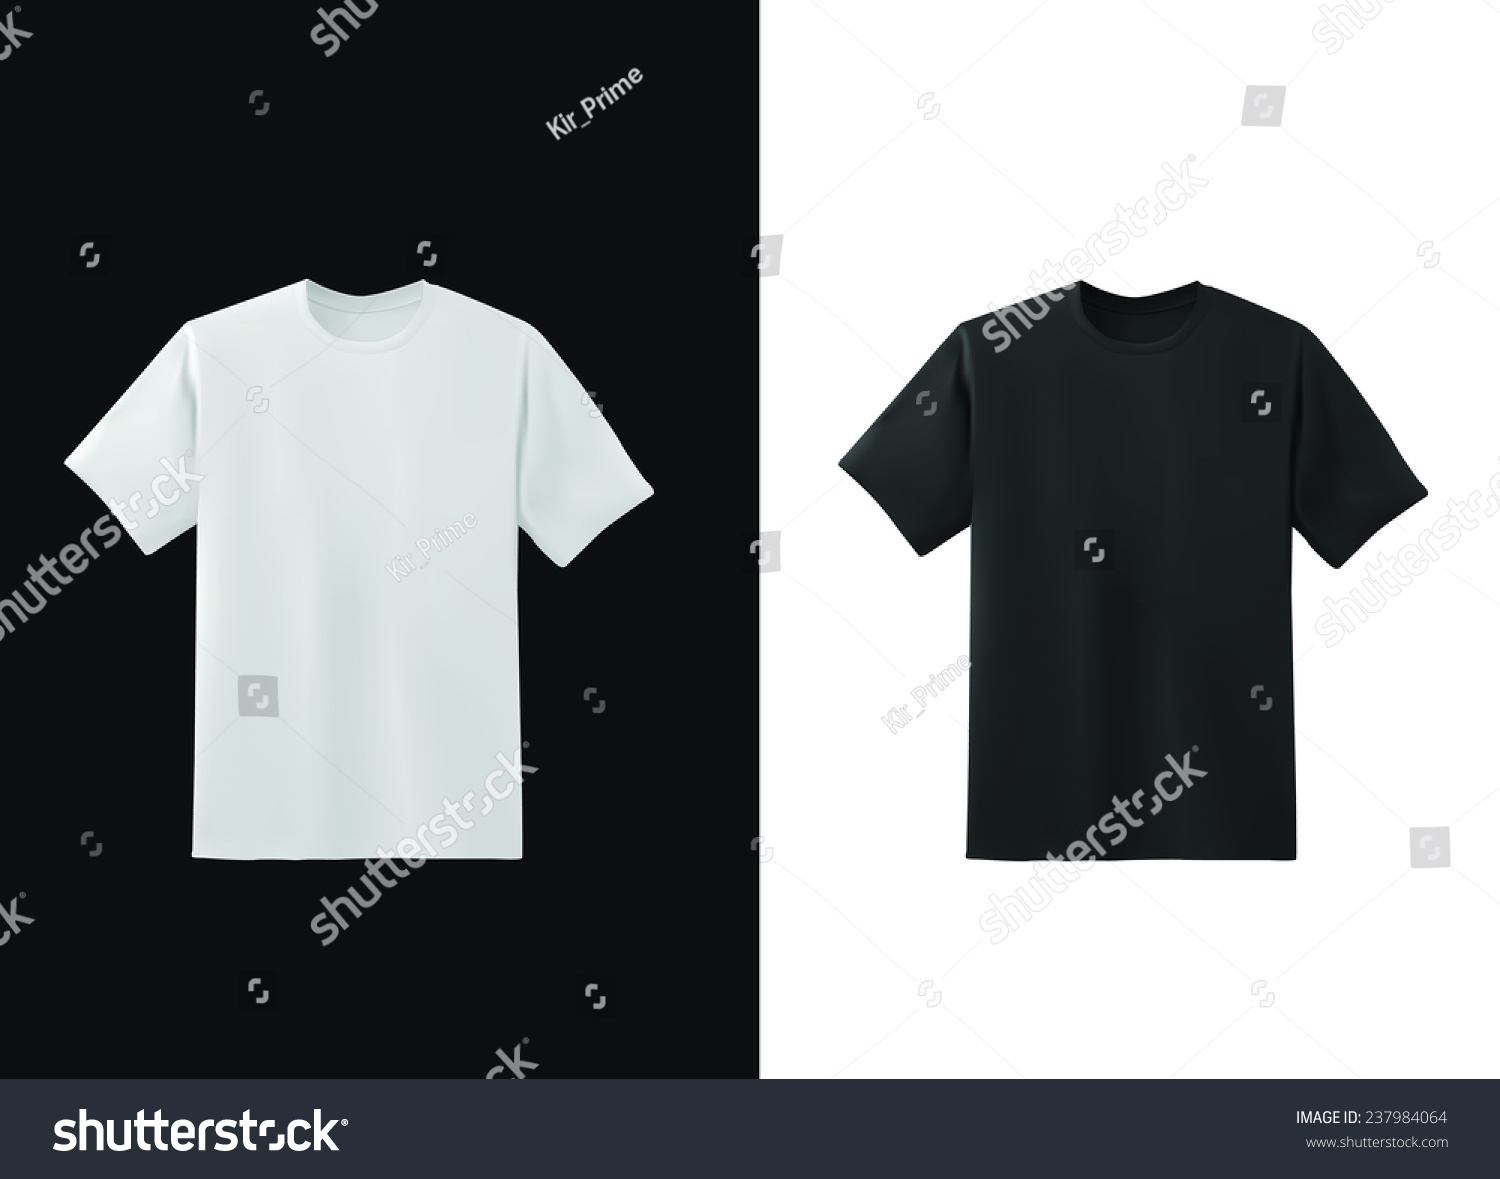 Black t shirt vector template - White And Black T Shirt Template Collection Vector Eps10 Illustration